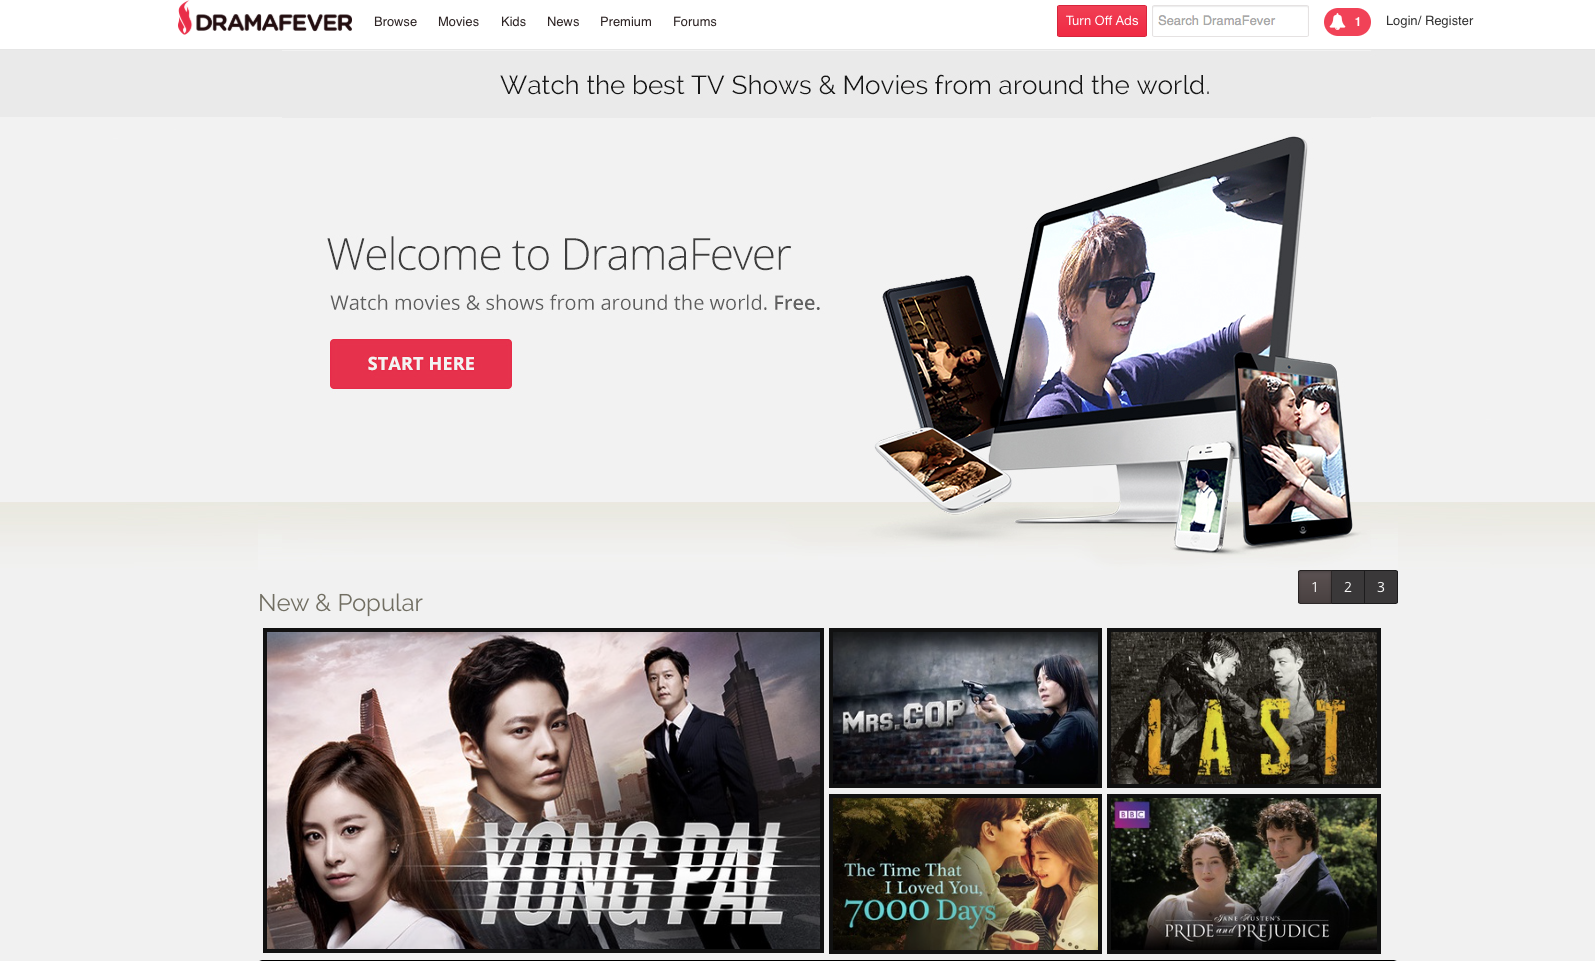 DramaFever website